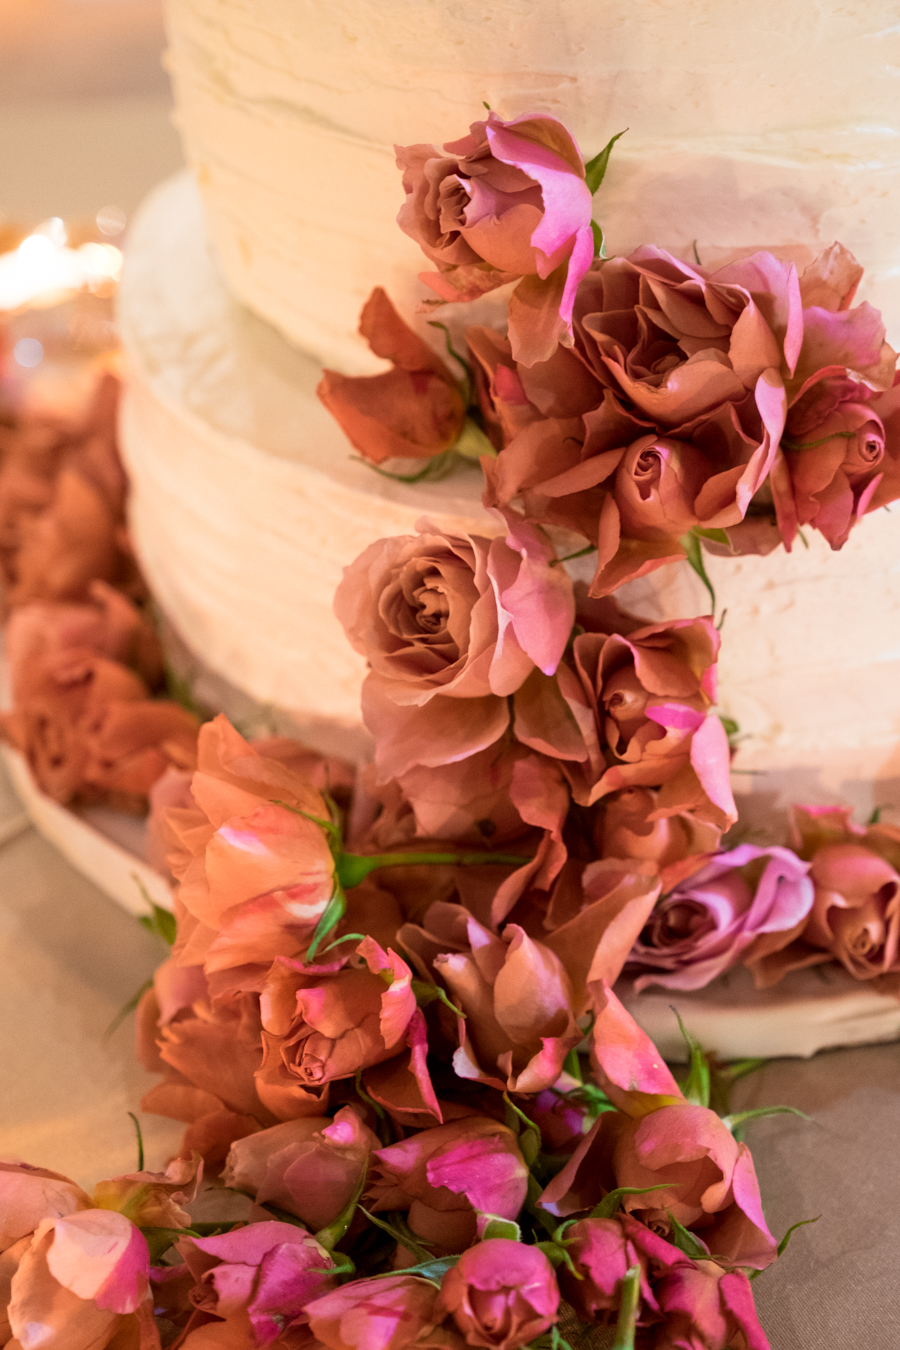 Wedding in tuscany wedding flowers destination weddings italy photography-029.jpg